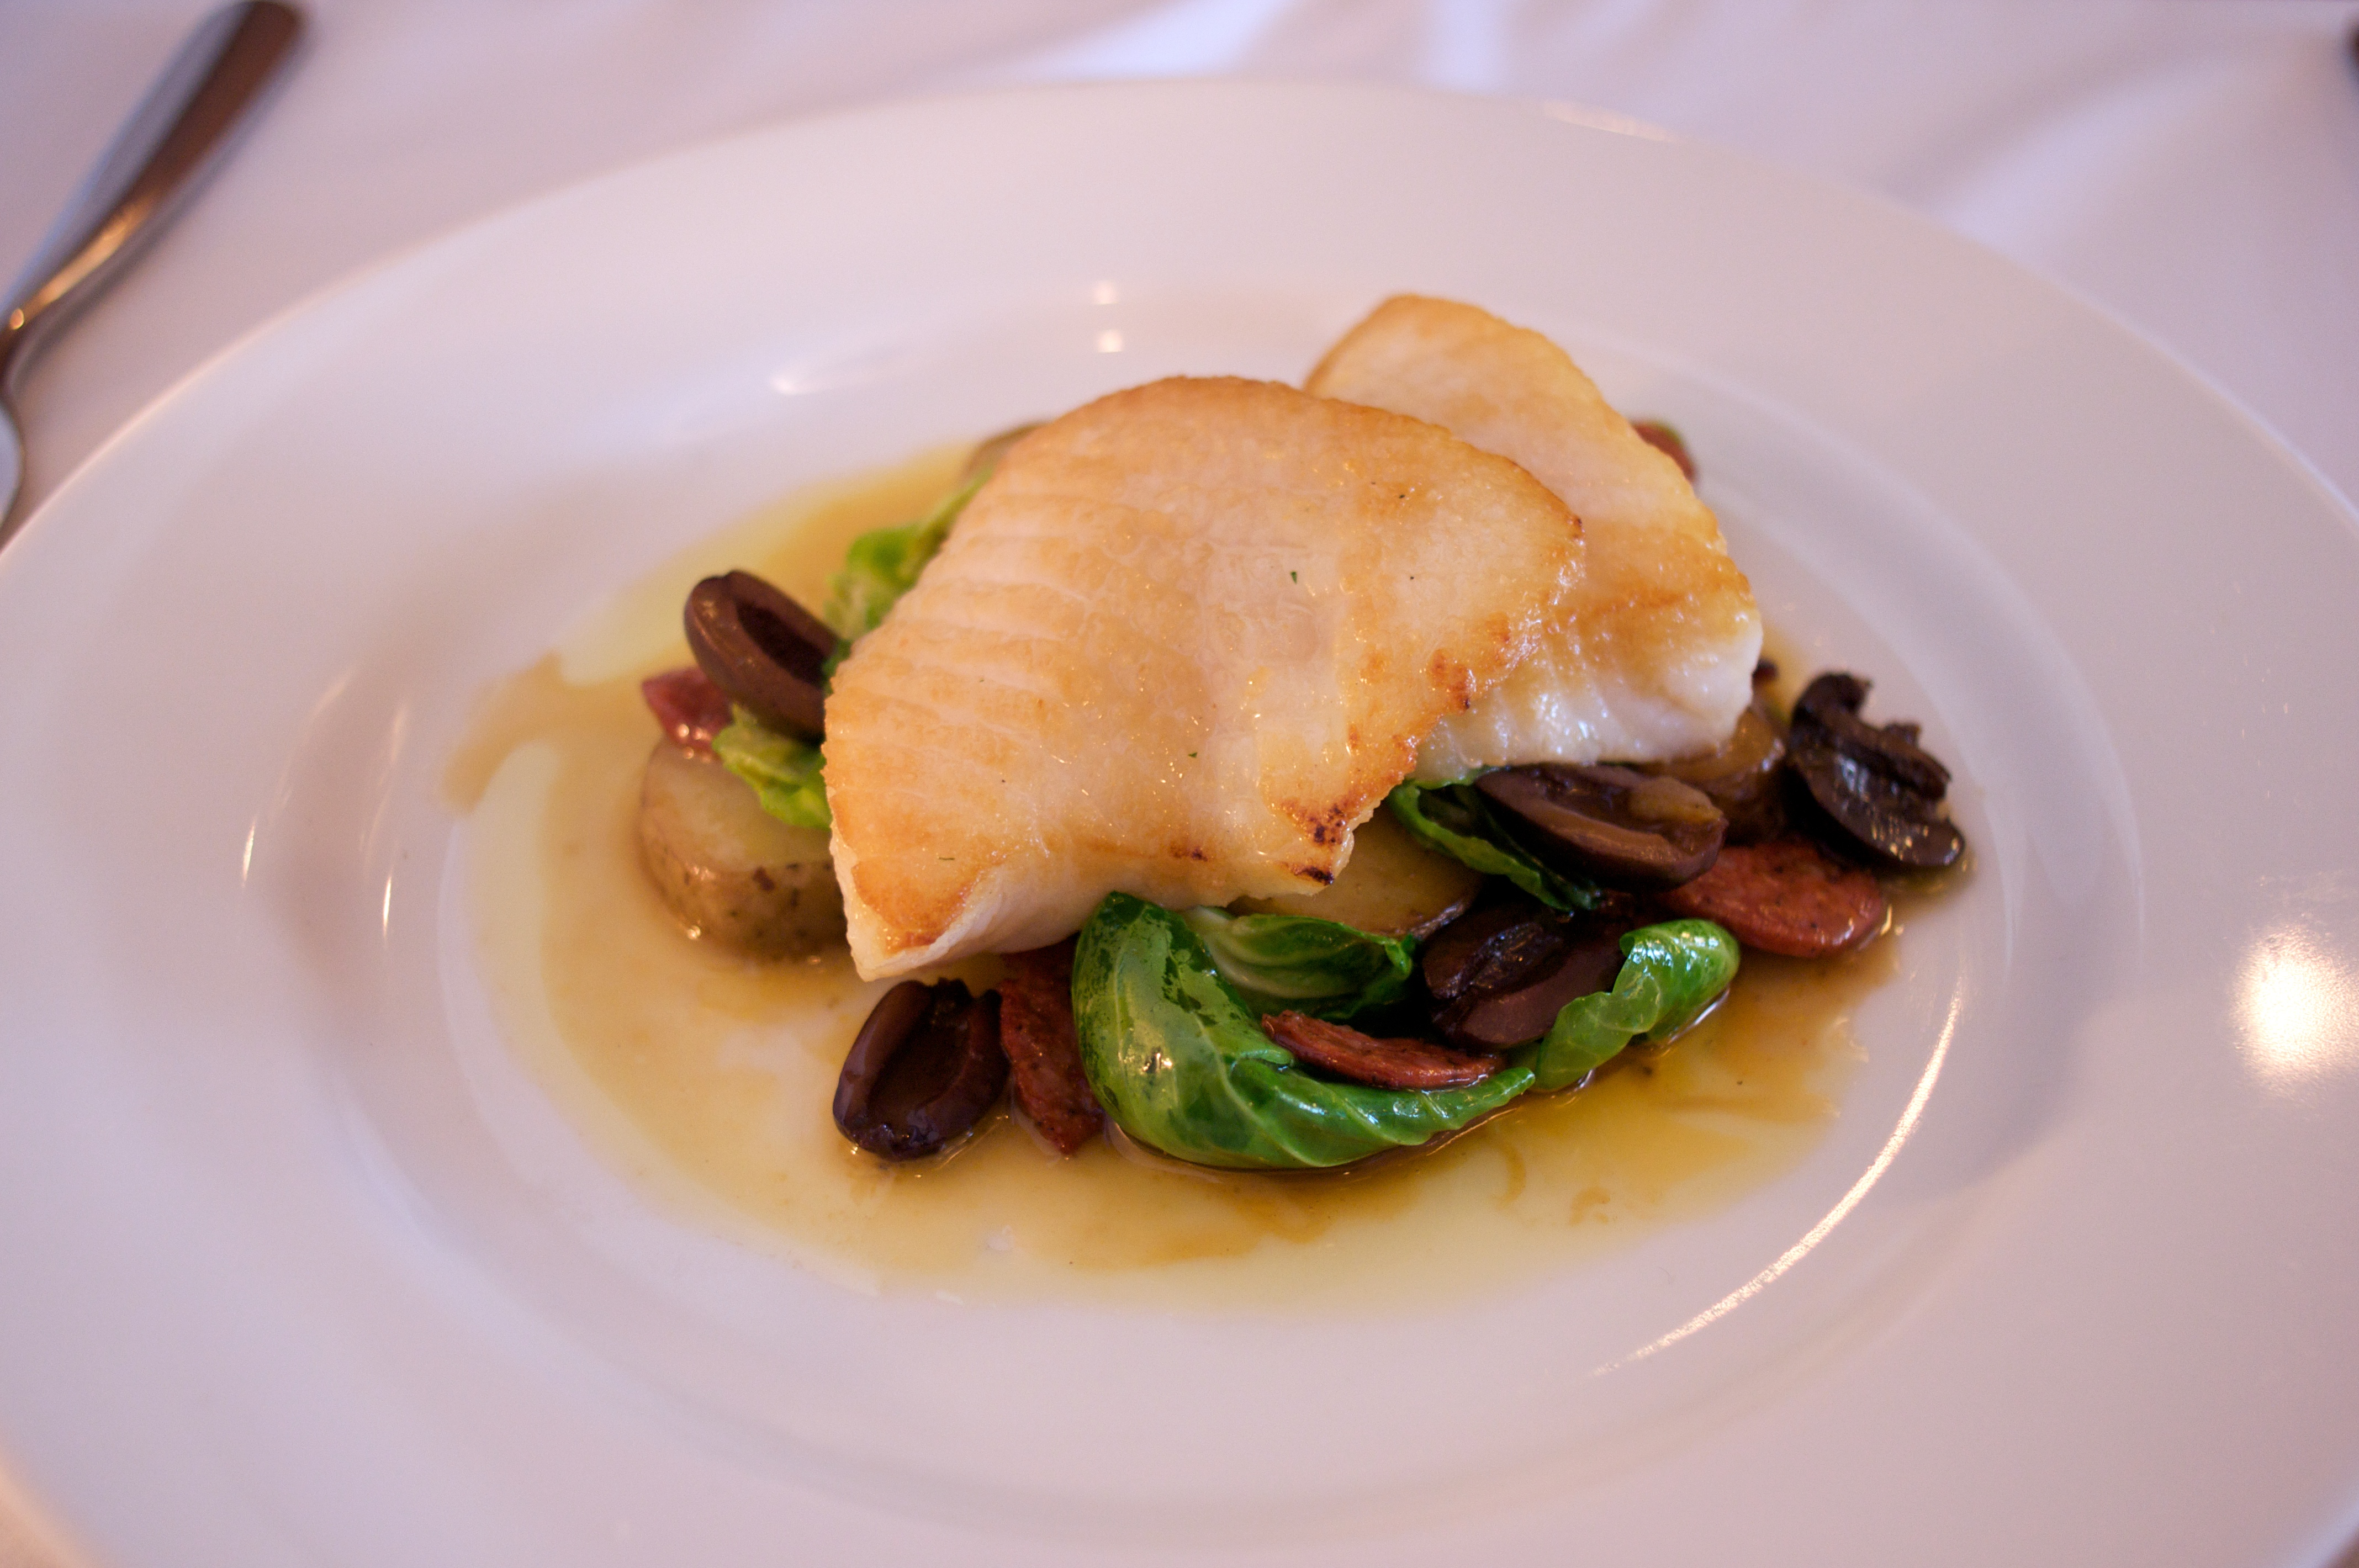 pan-seared lingcod with brussel sprout leaves, sausage, olives, and potato